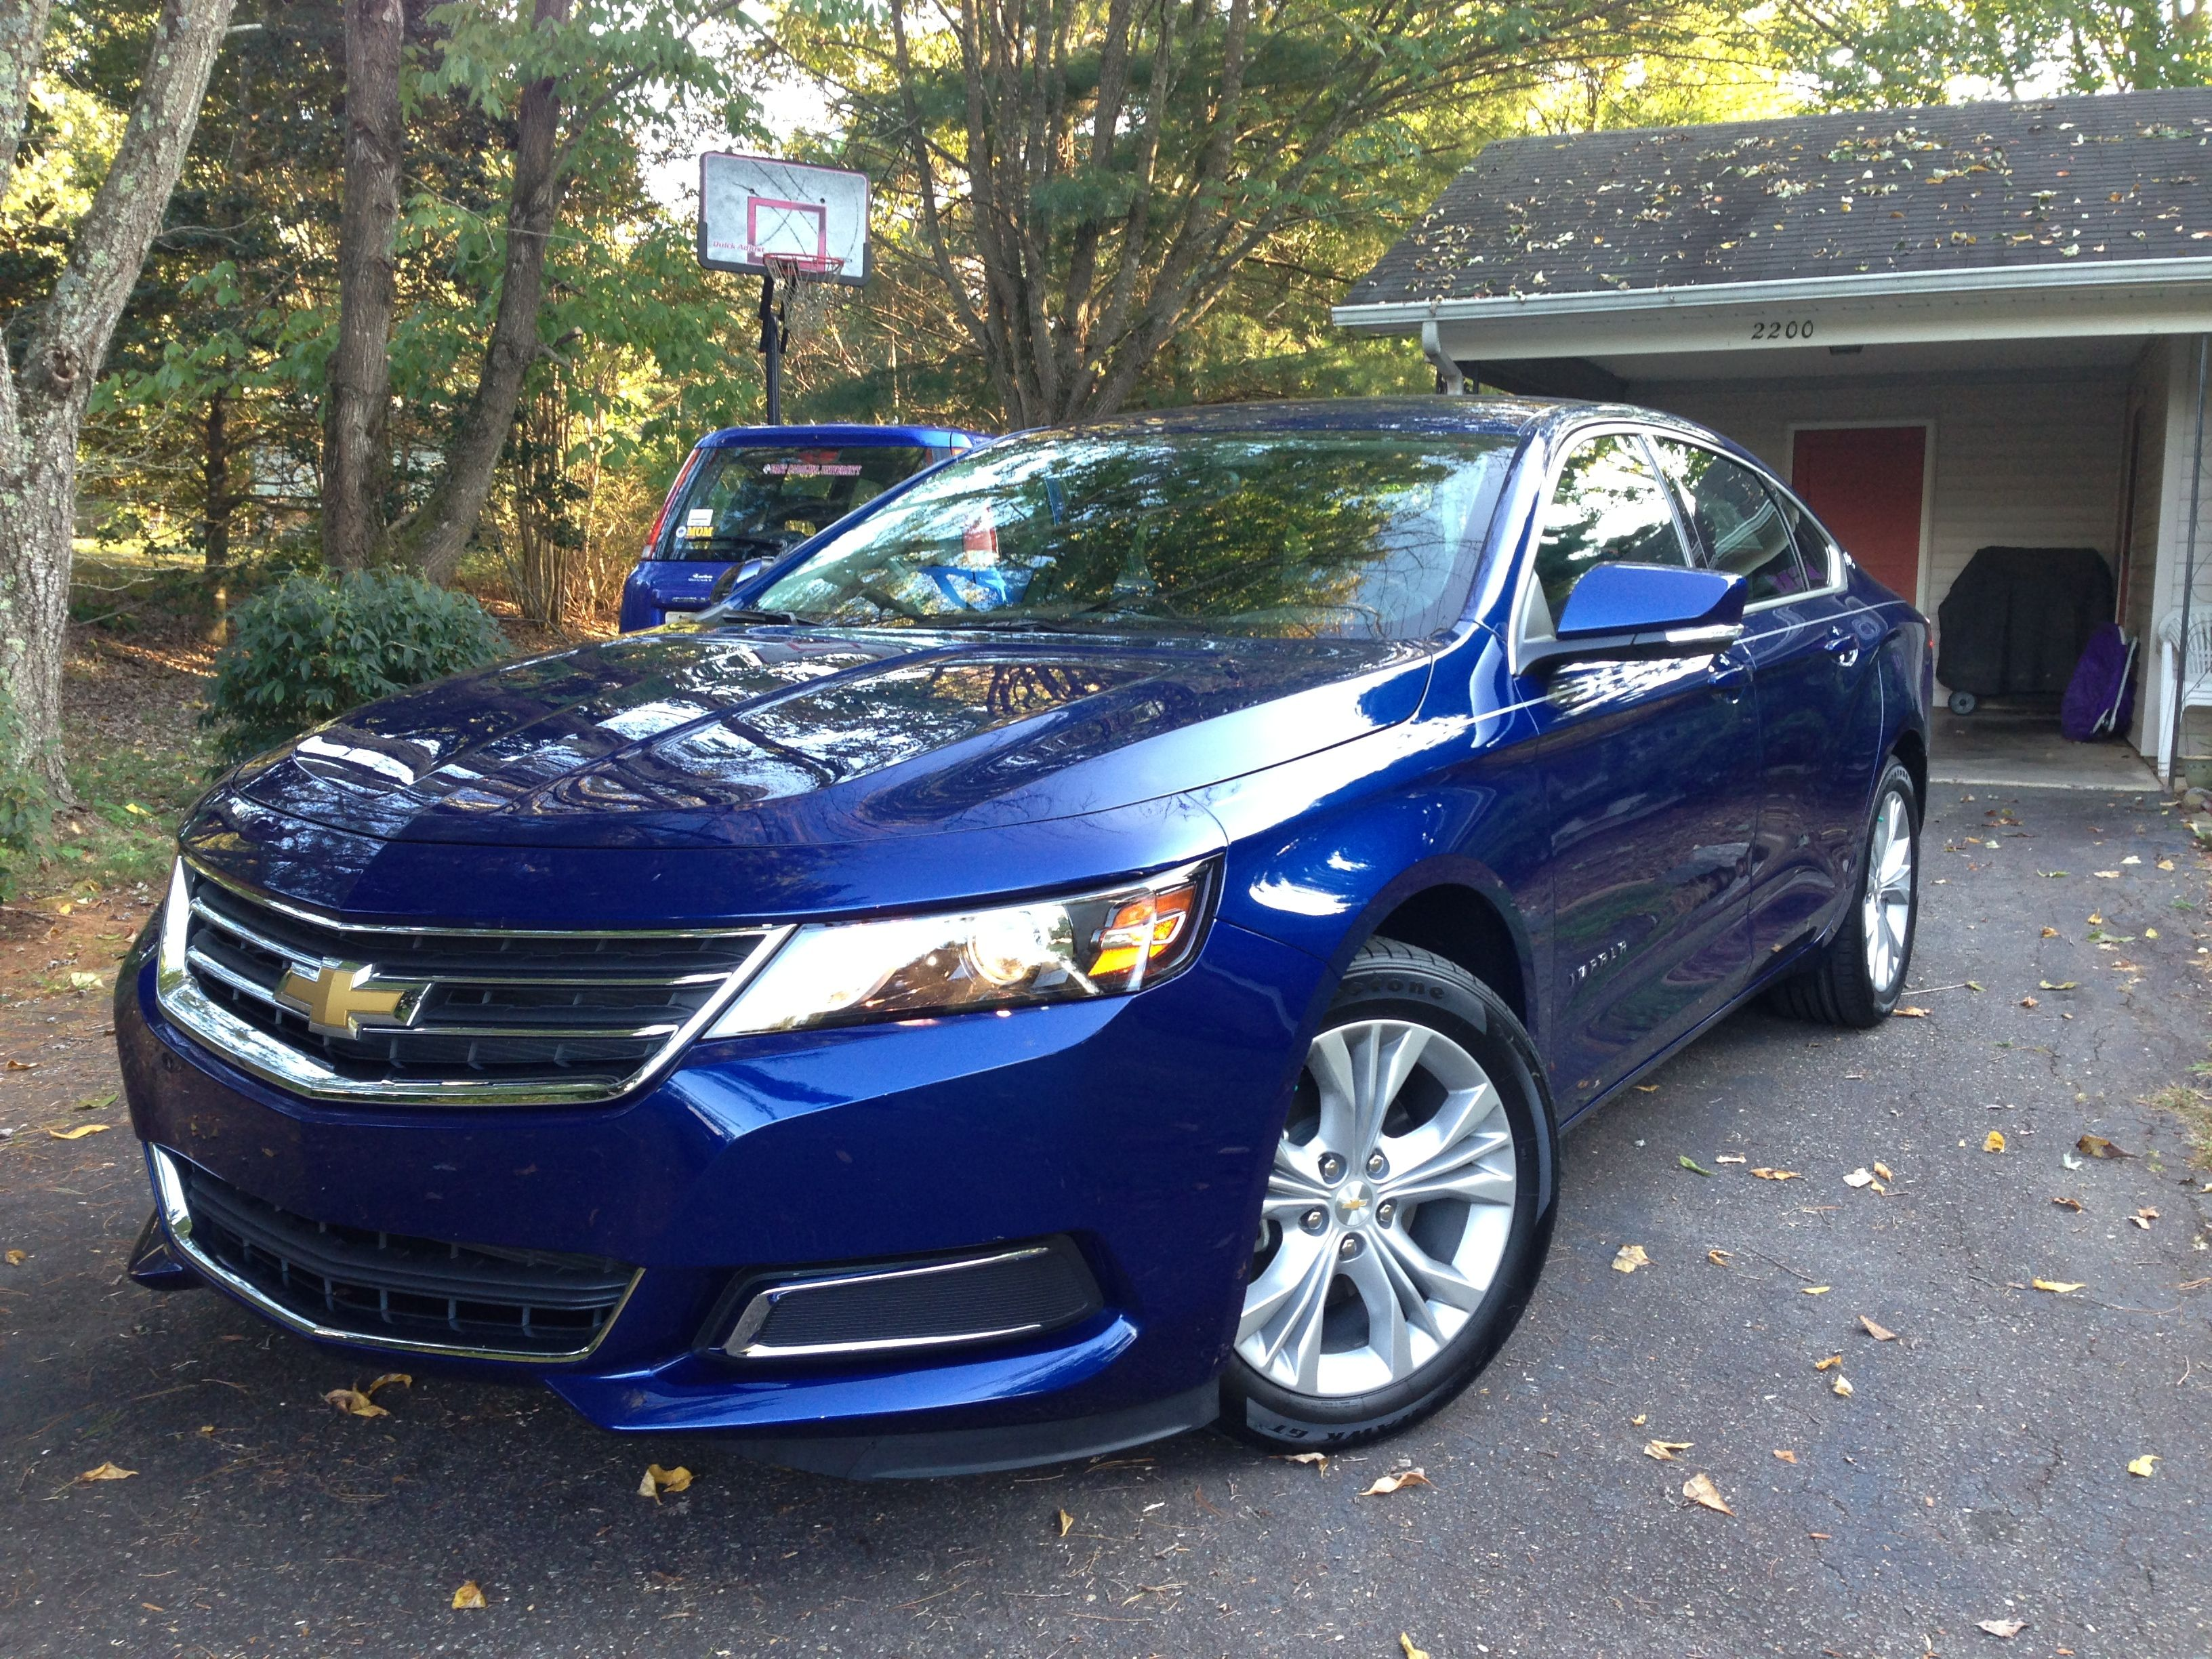 2014 Chevy Impala LT I've never owned a blue car before